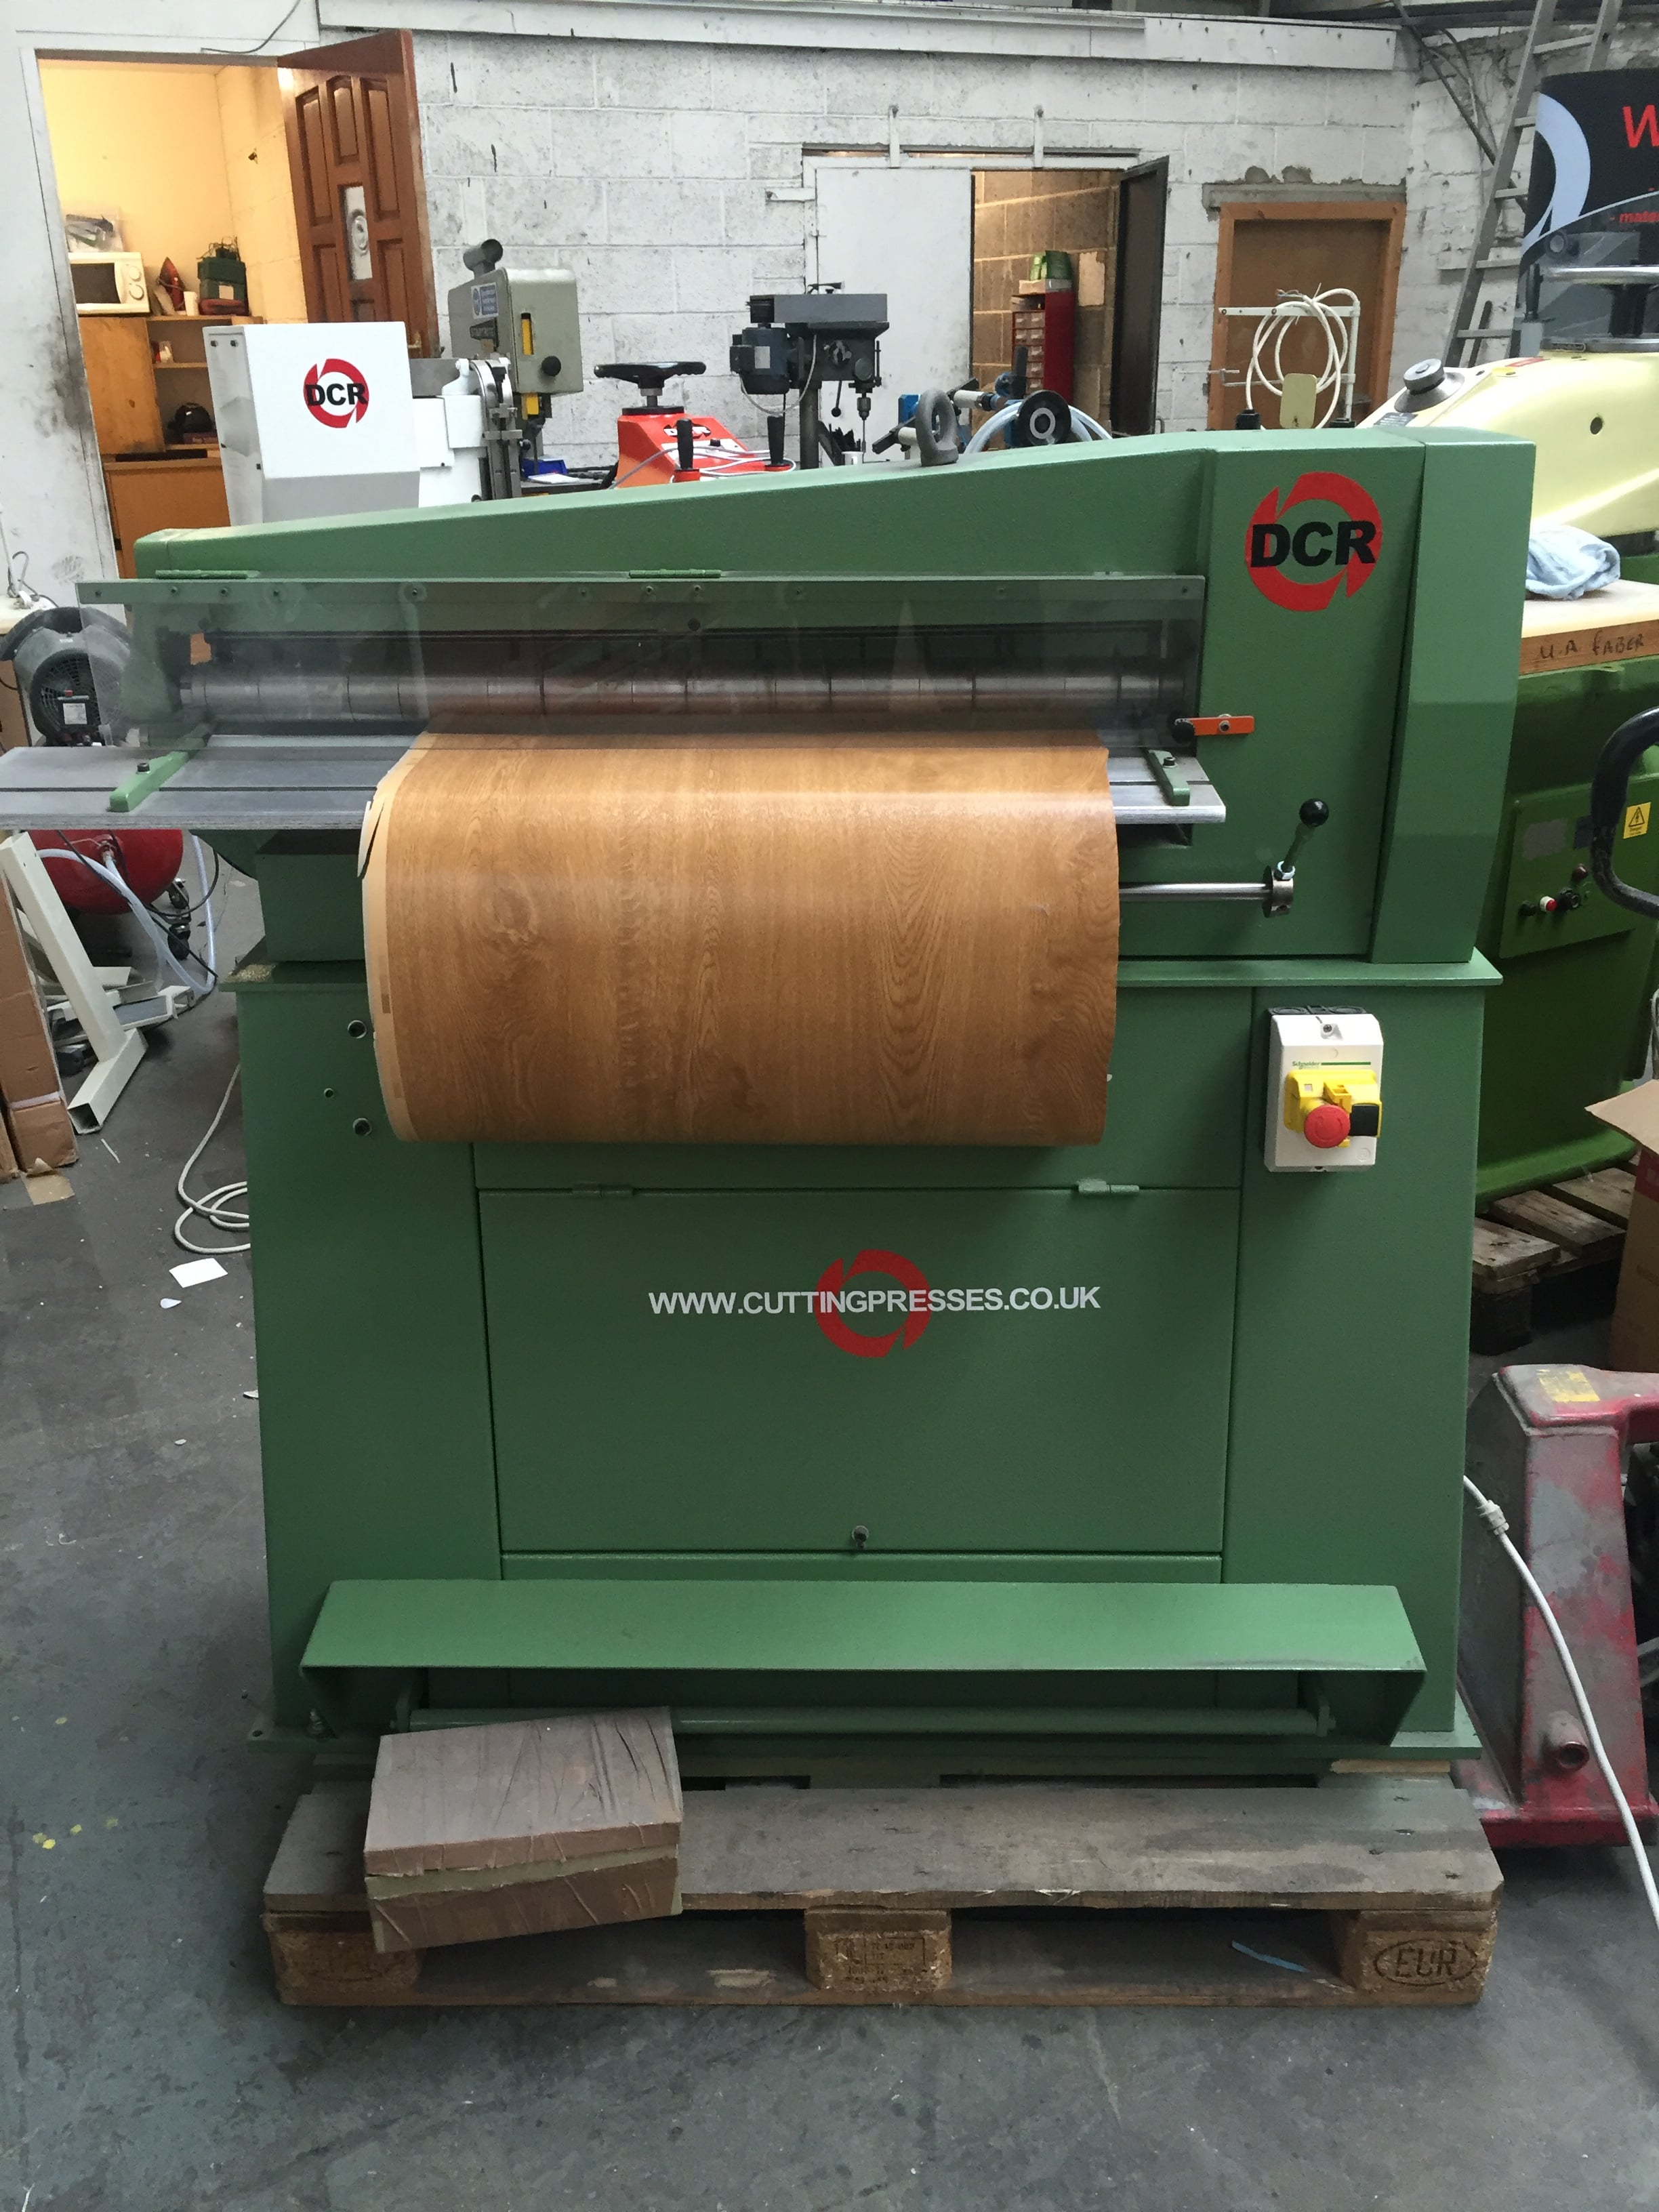 Photo of an DCR SC1000- Strip Cutter 1000mm Industrial Sewing Machines